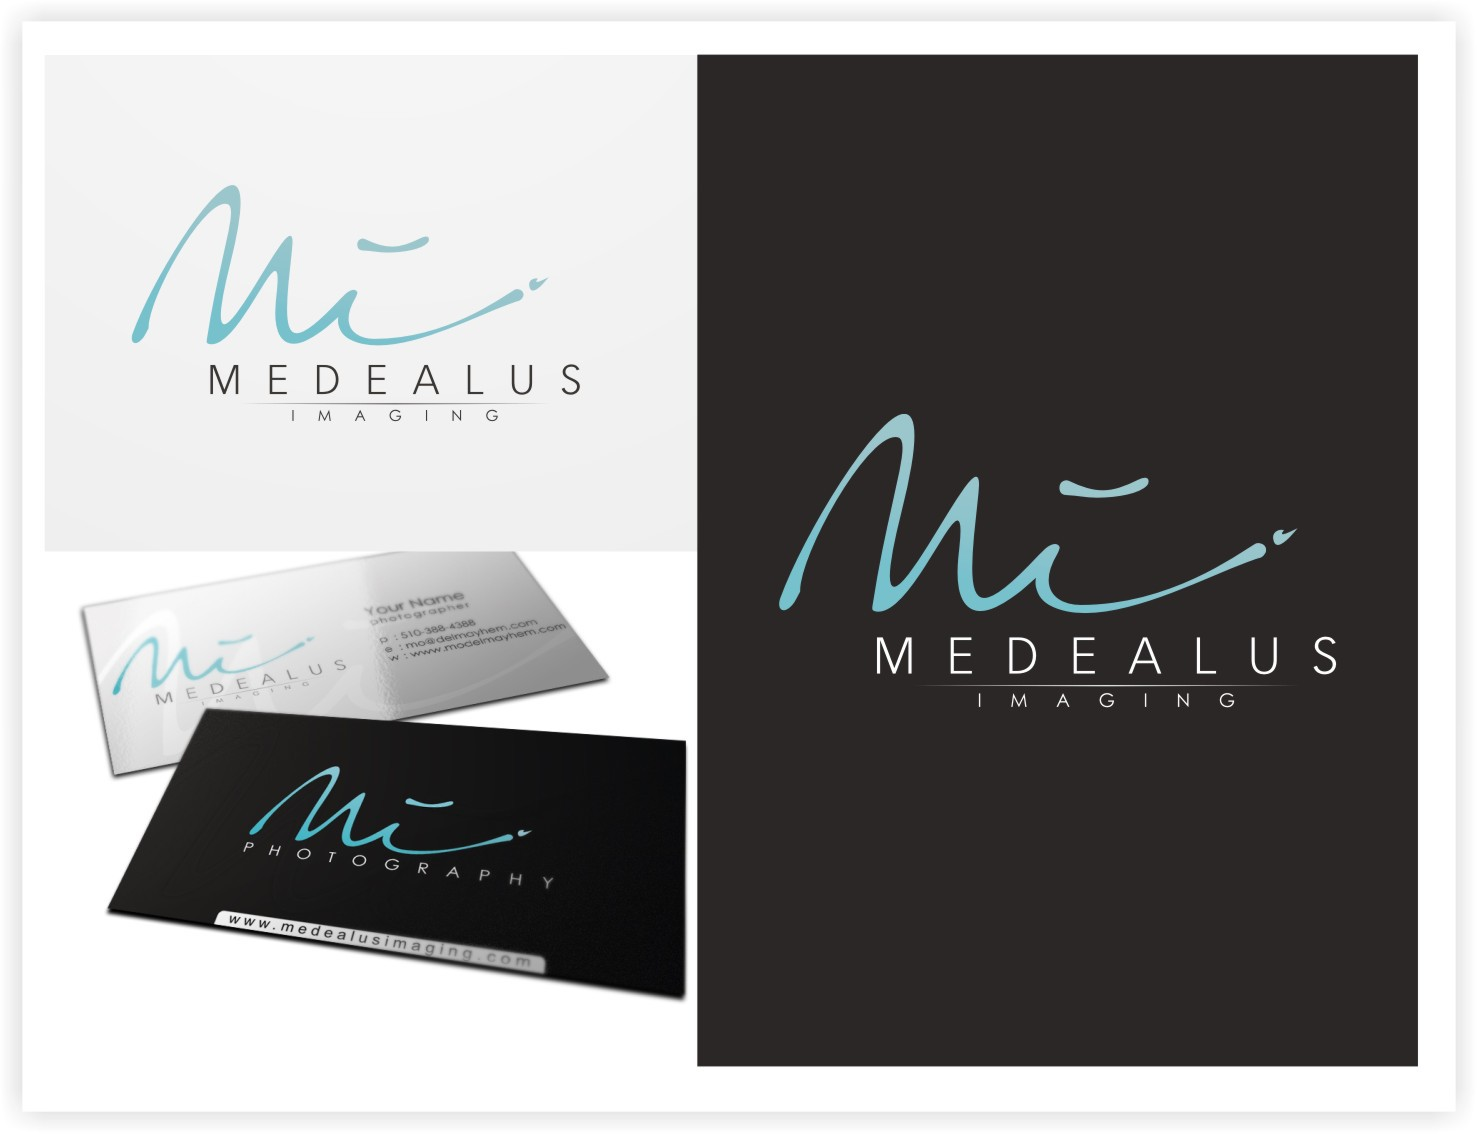 New logo wanted for Medealus Imaging